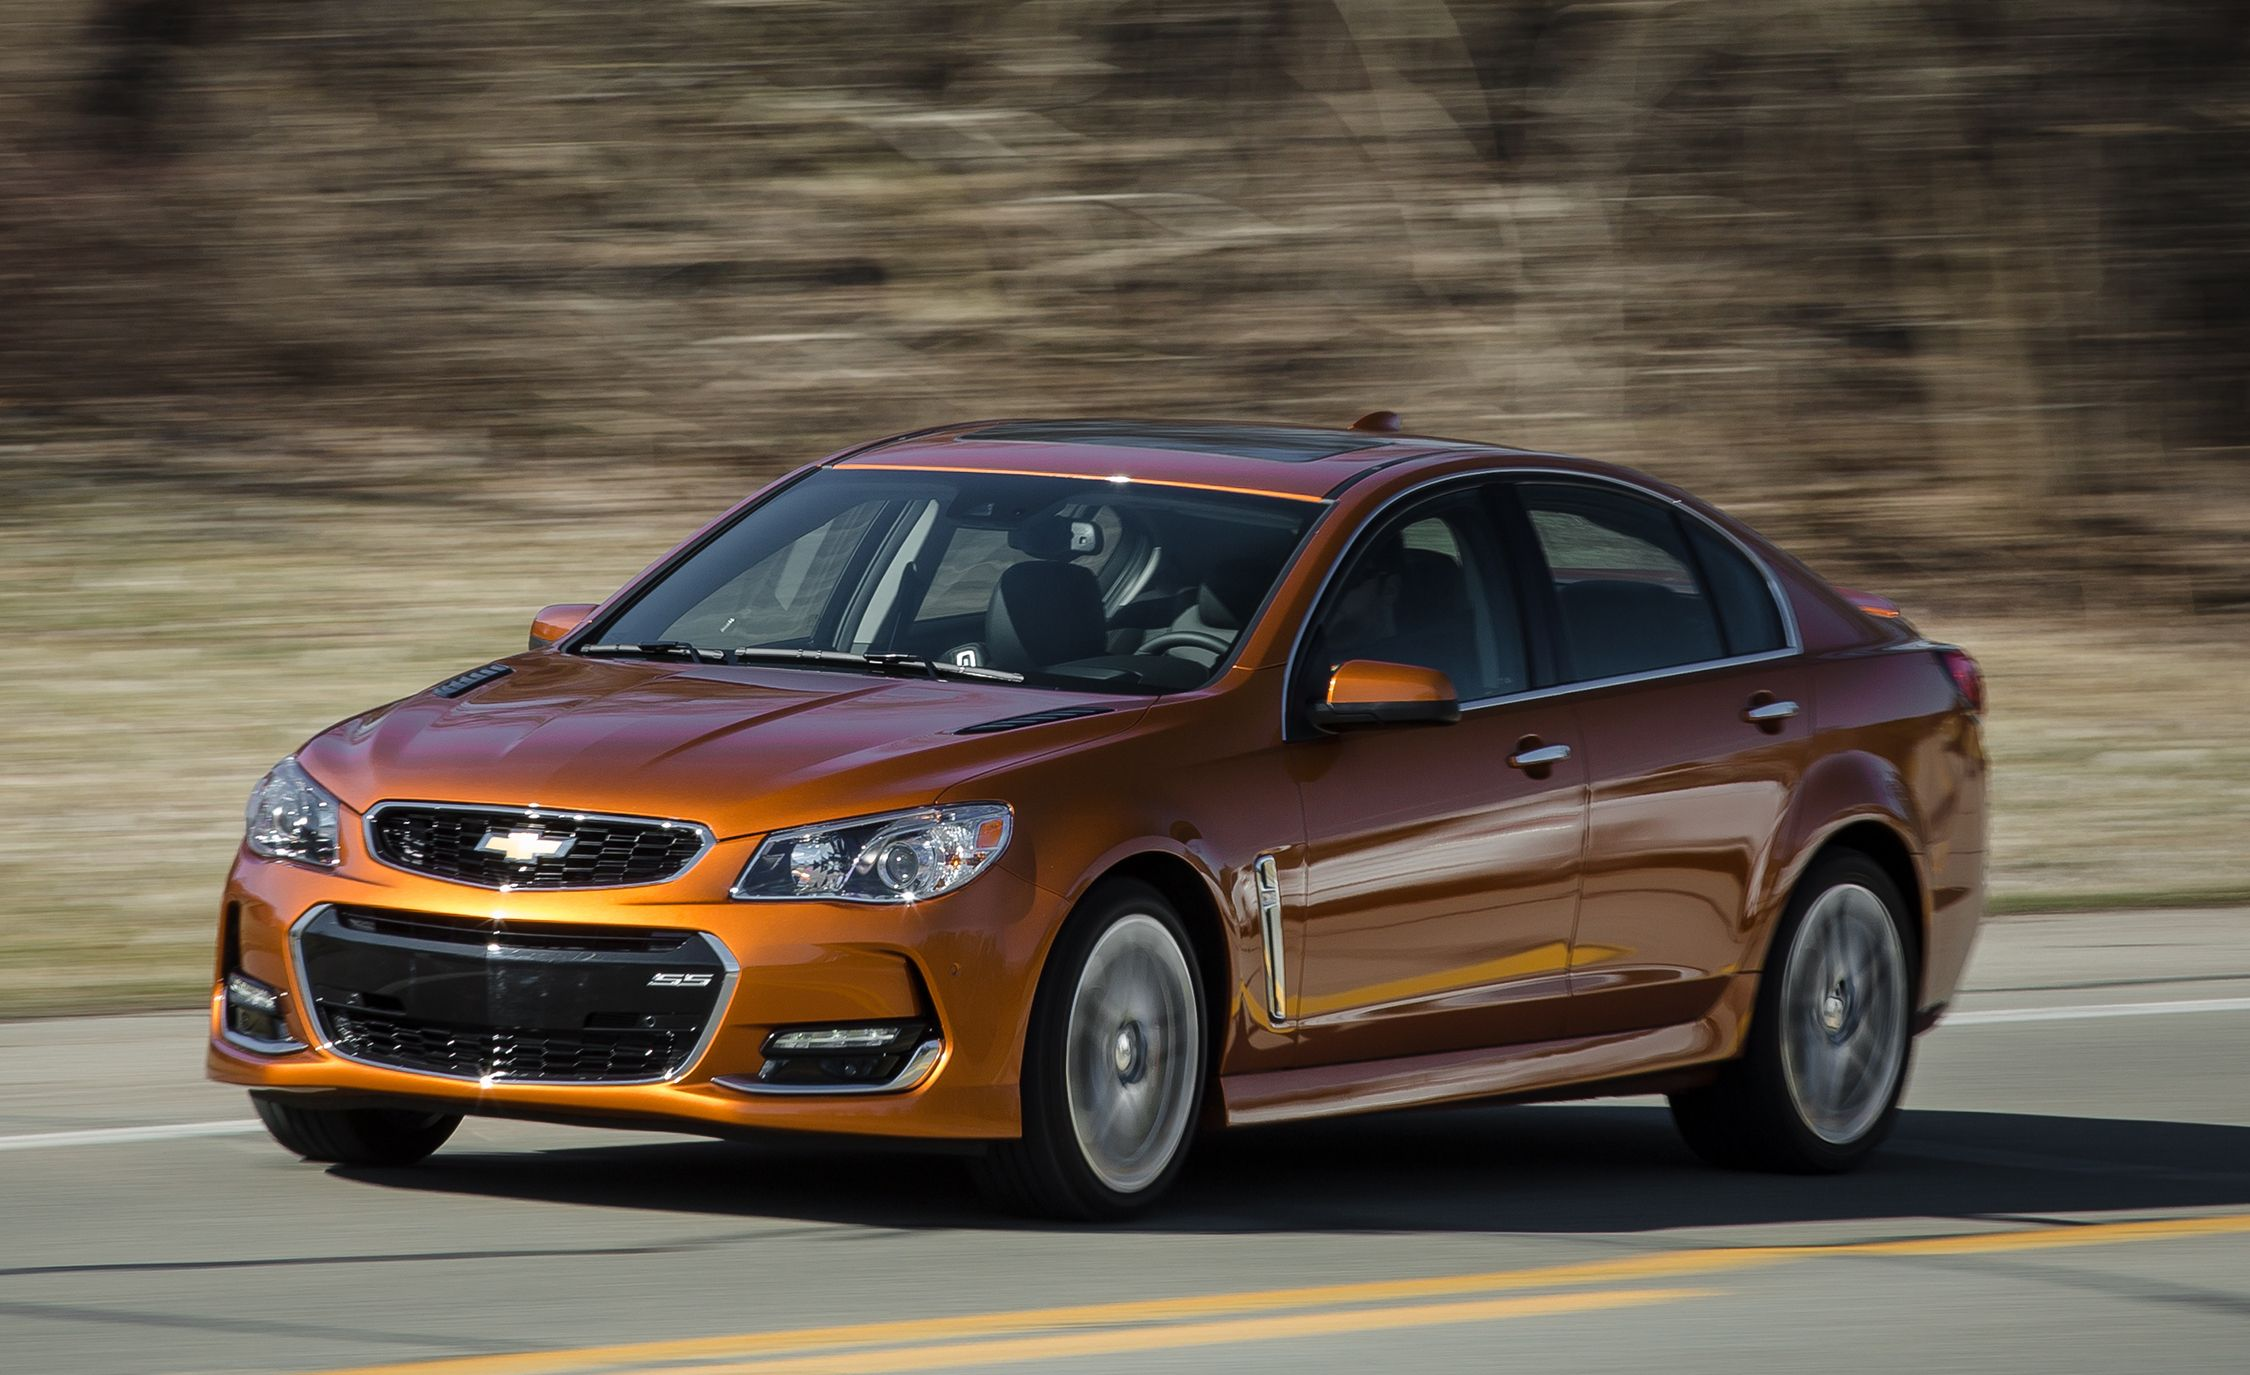 2018 chevrolet ss reviews chevrolet ss price photos and specs rh caranddriver com